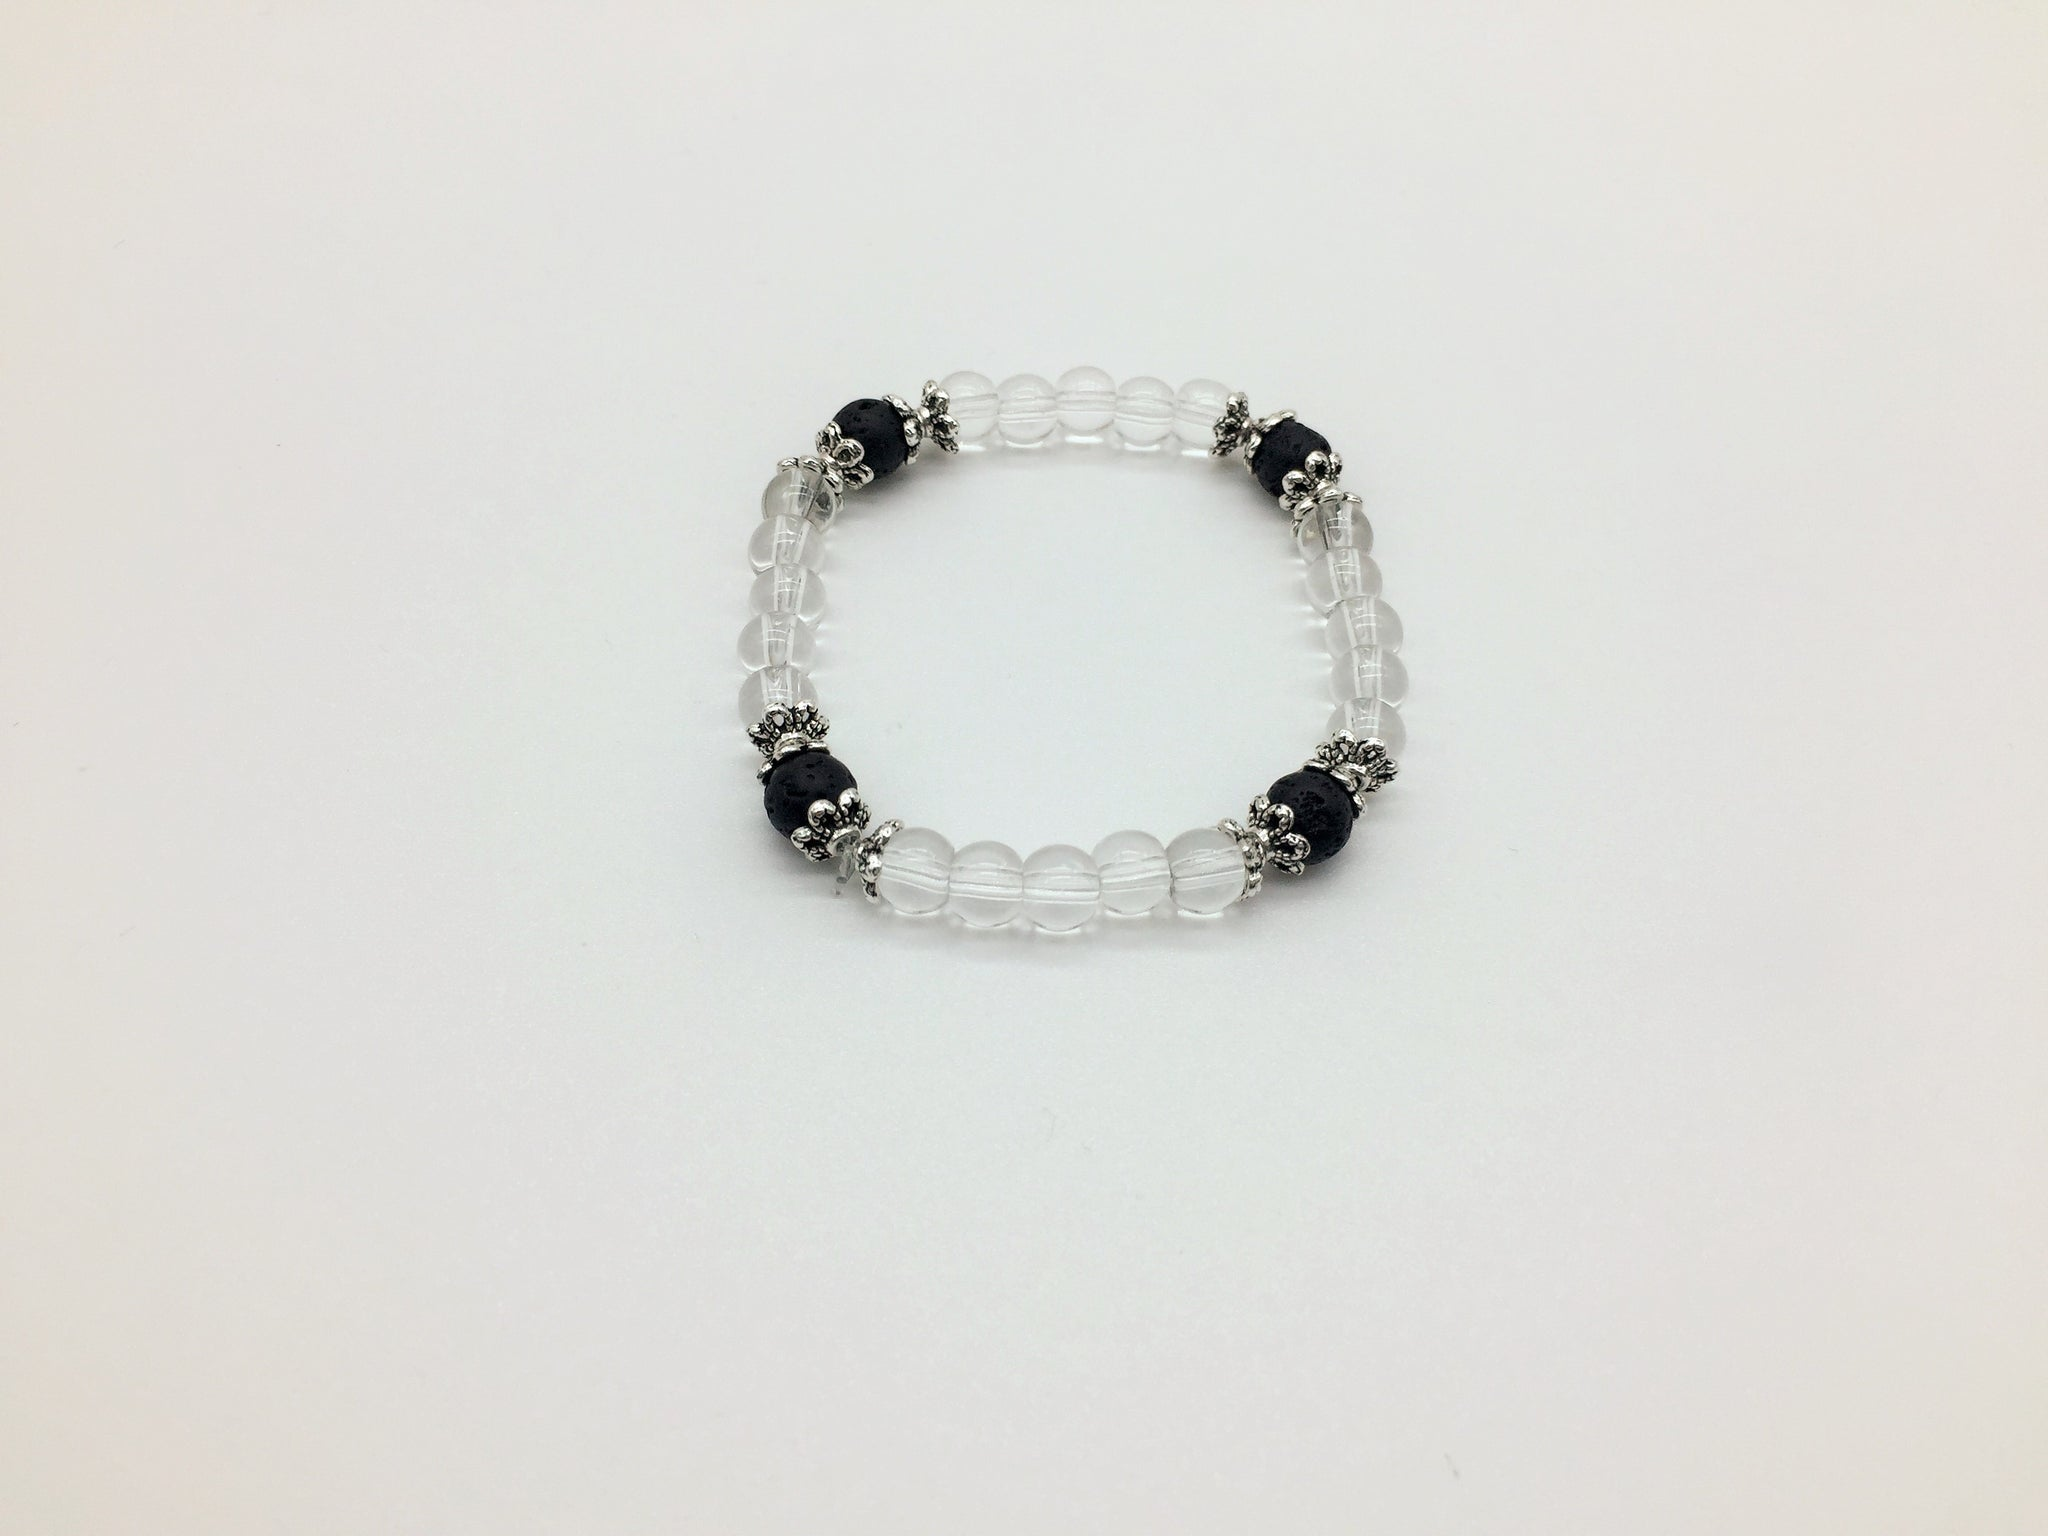 Crown Chakra Activating & Balancing Bracelet Clear Quartz & Lava